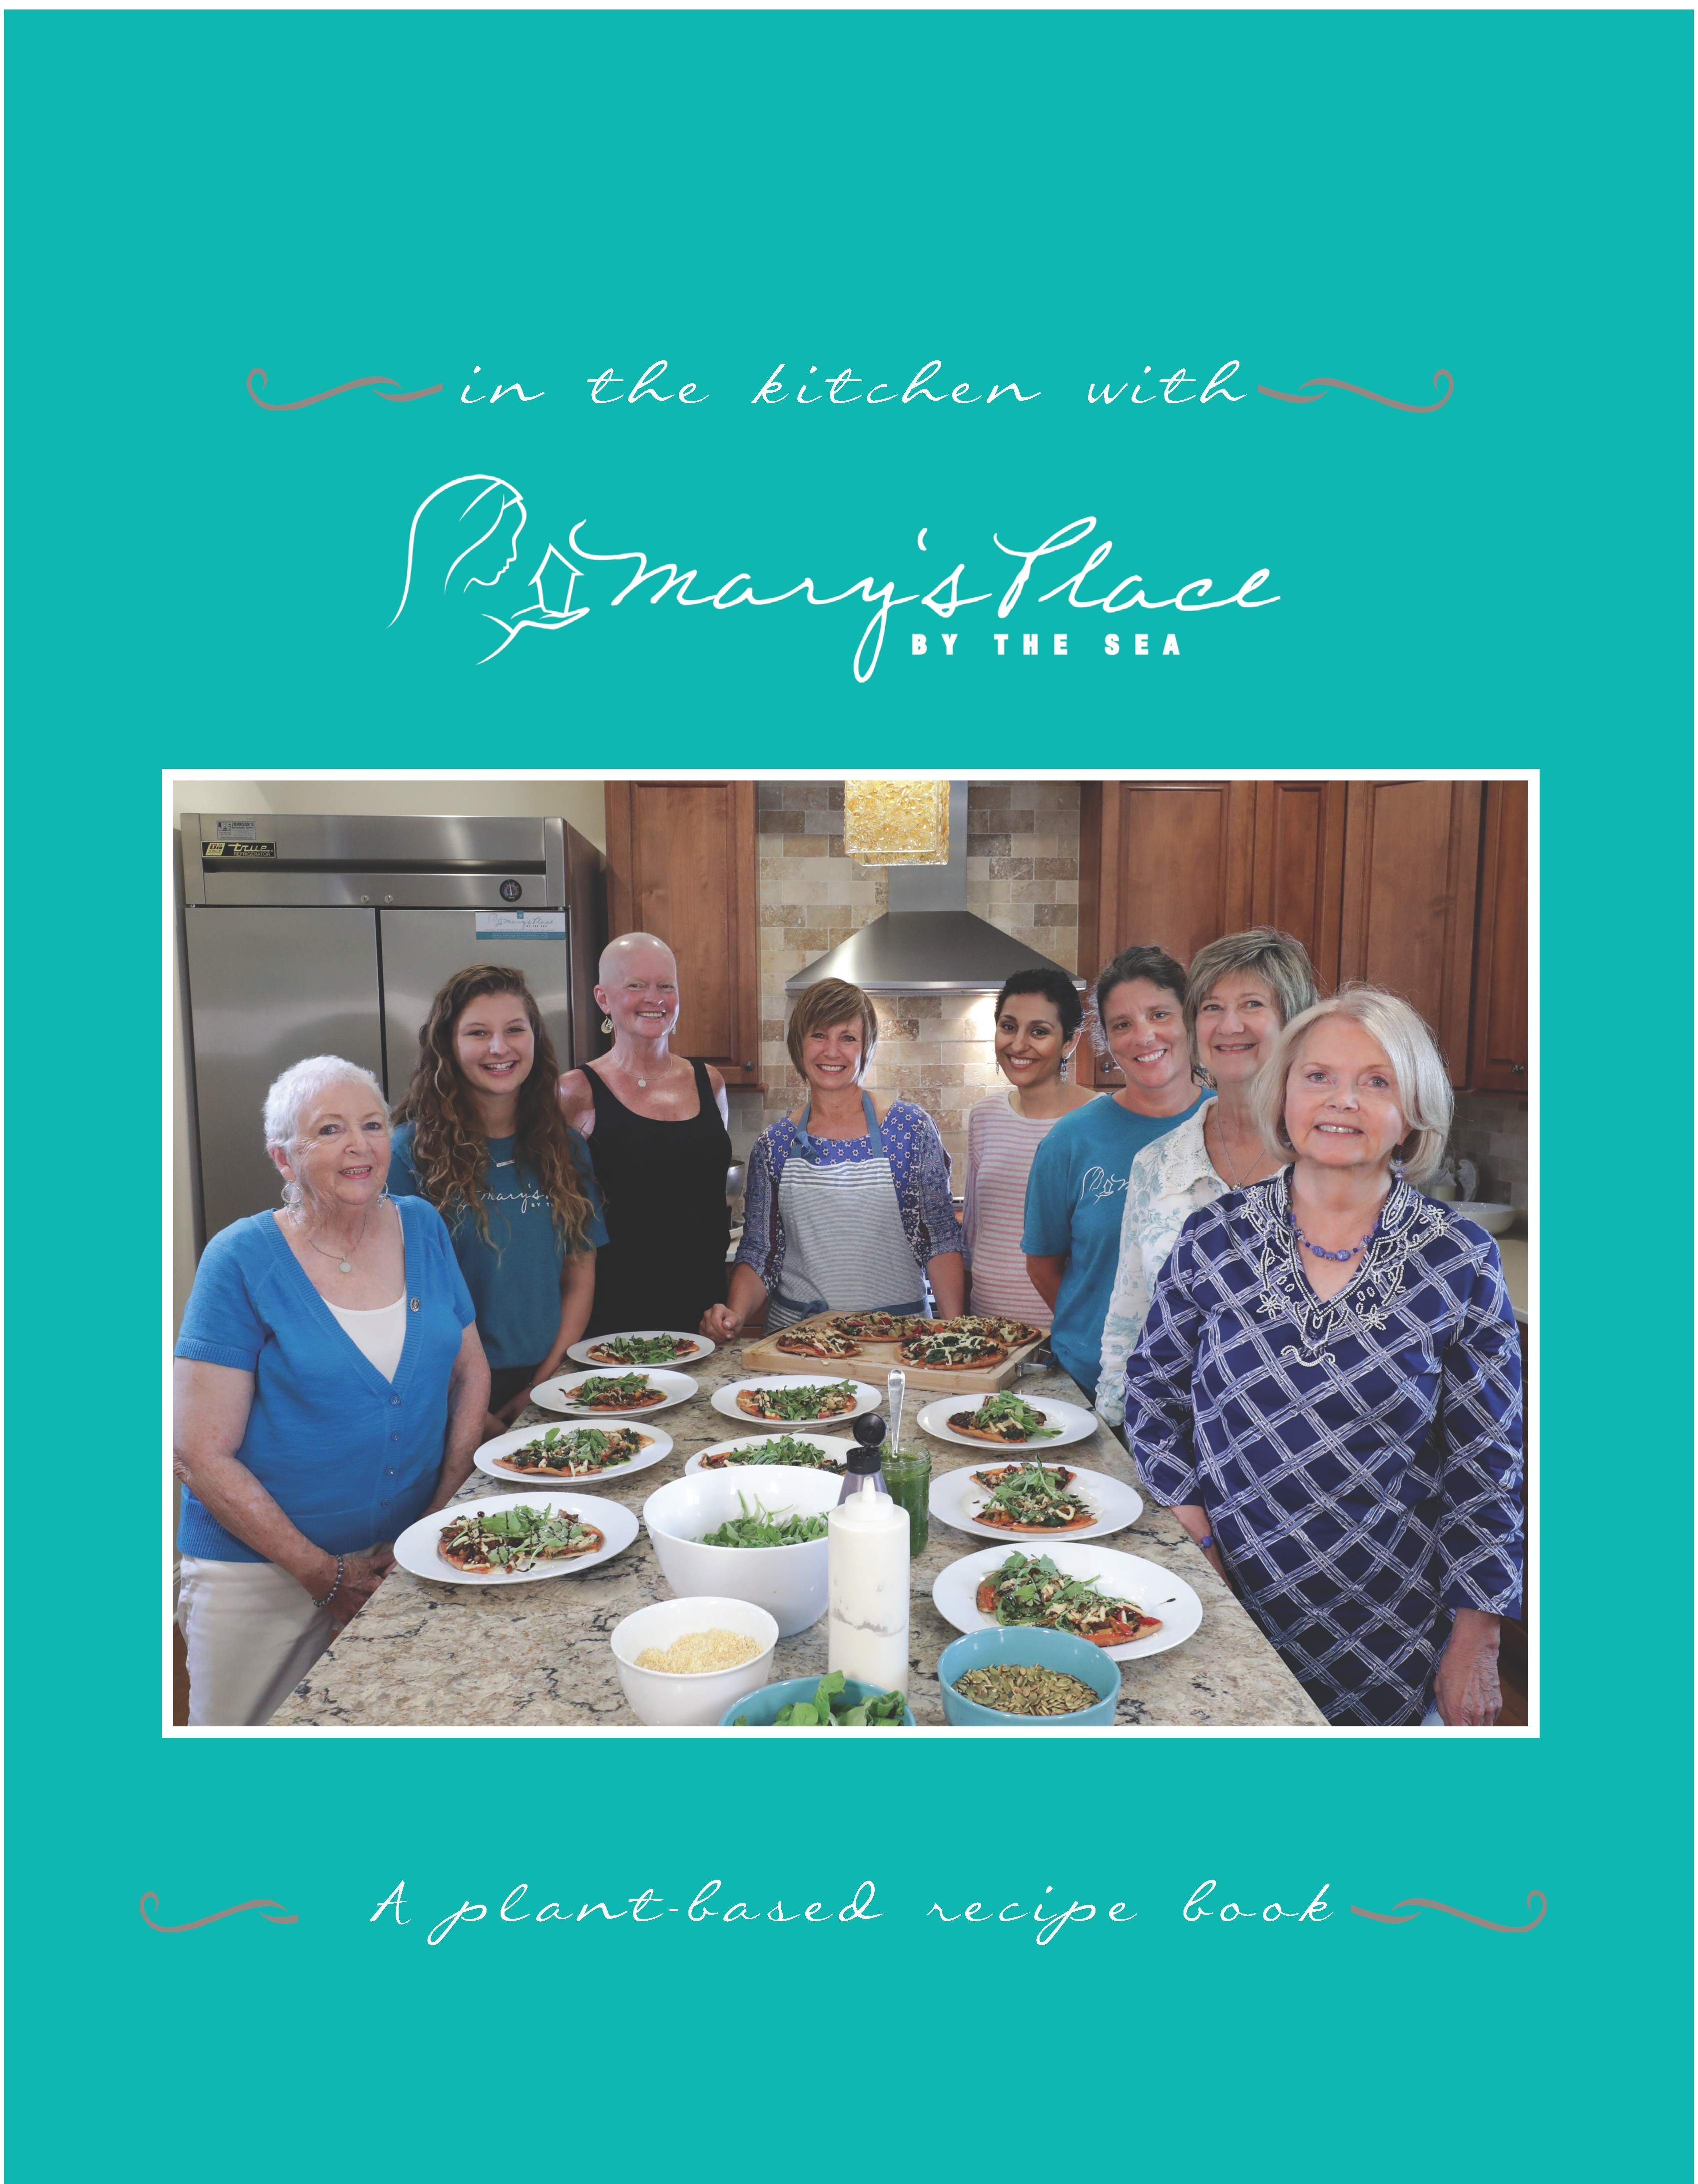 In The Kitchen With Mary S Place By Sea Recipe Book